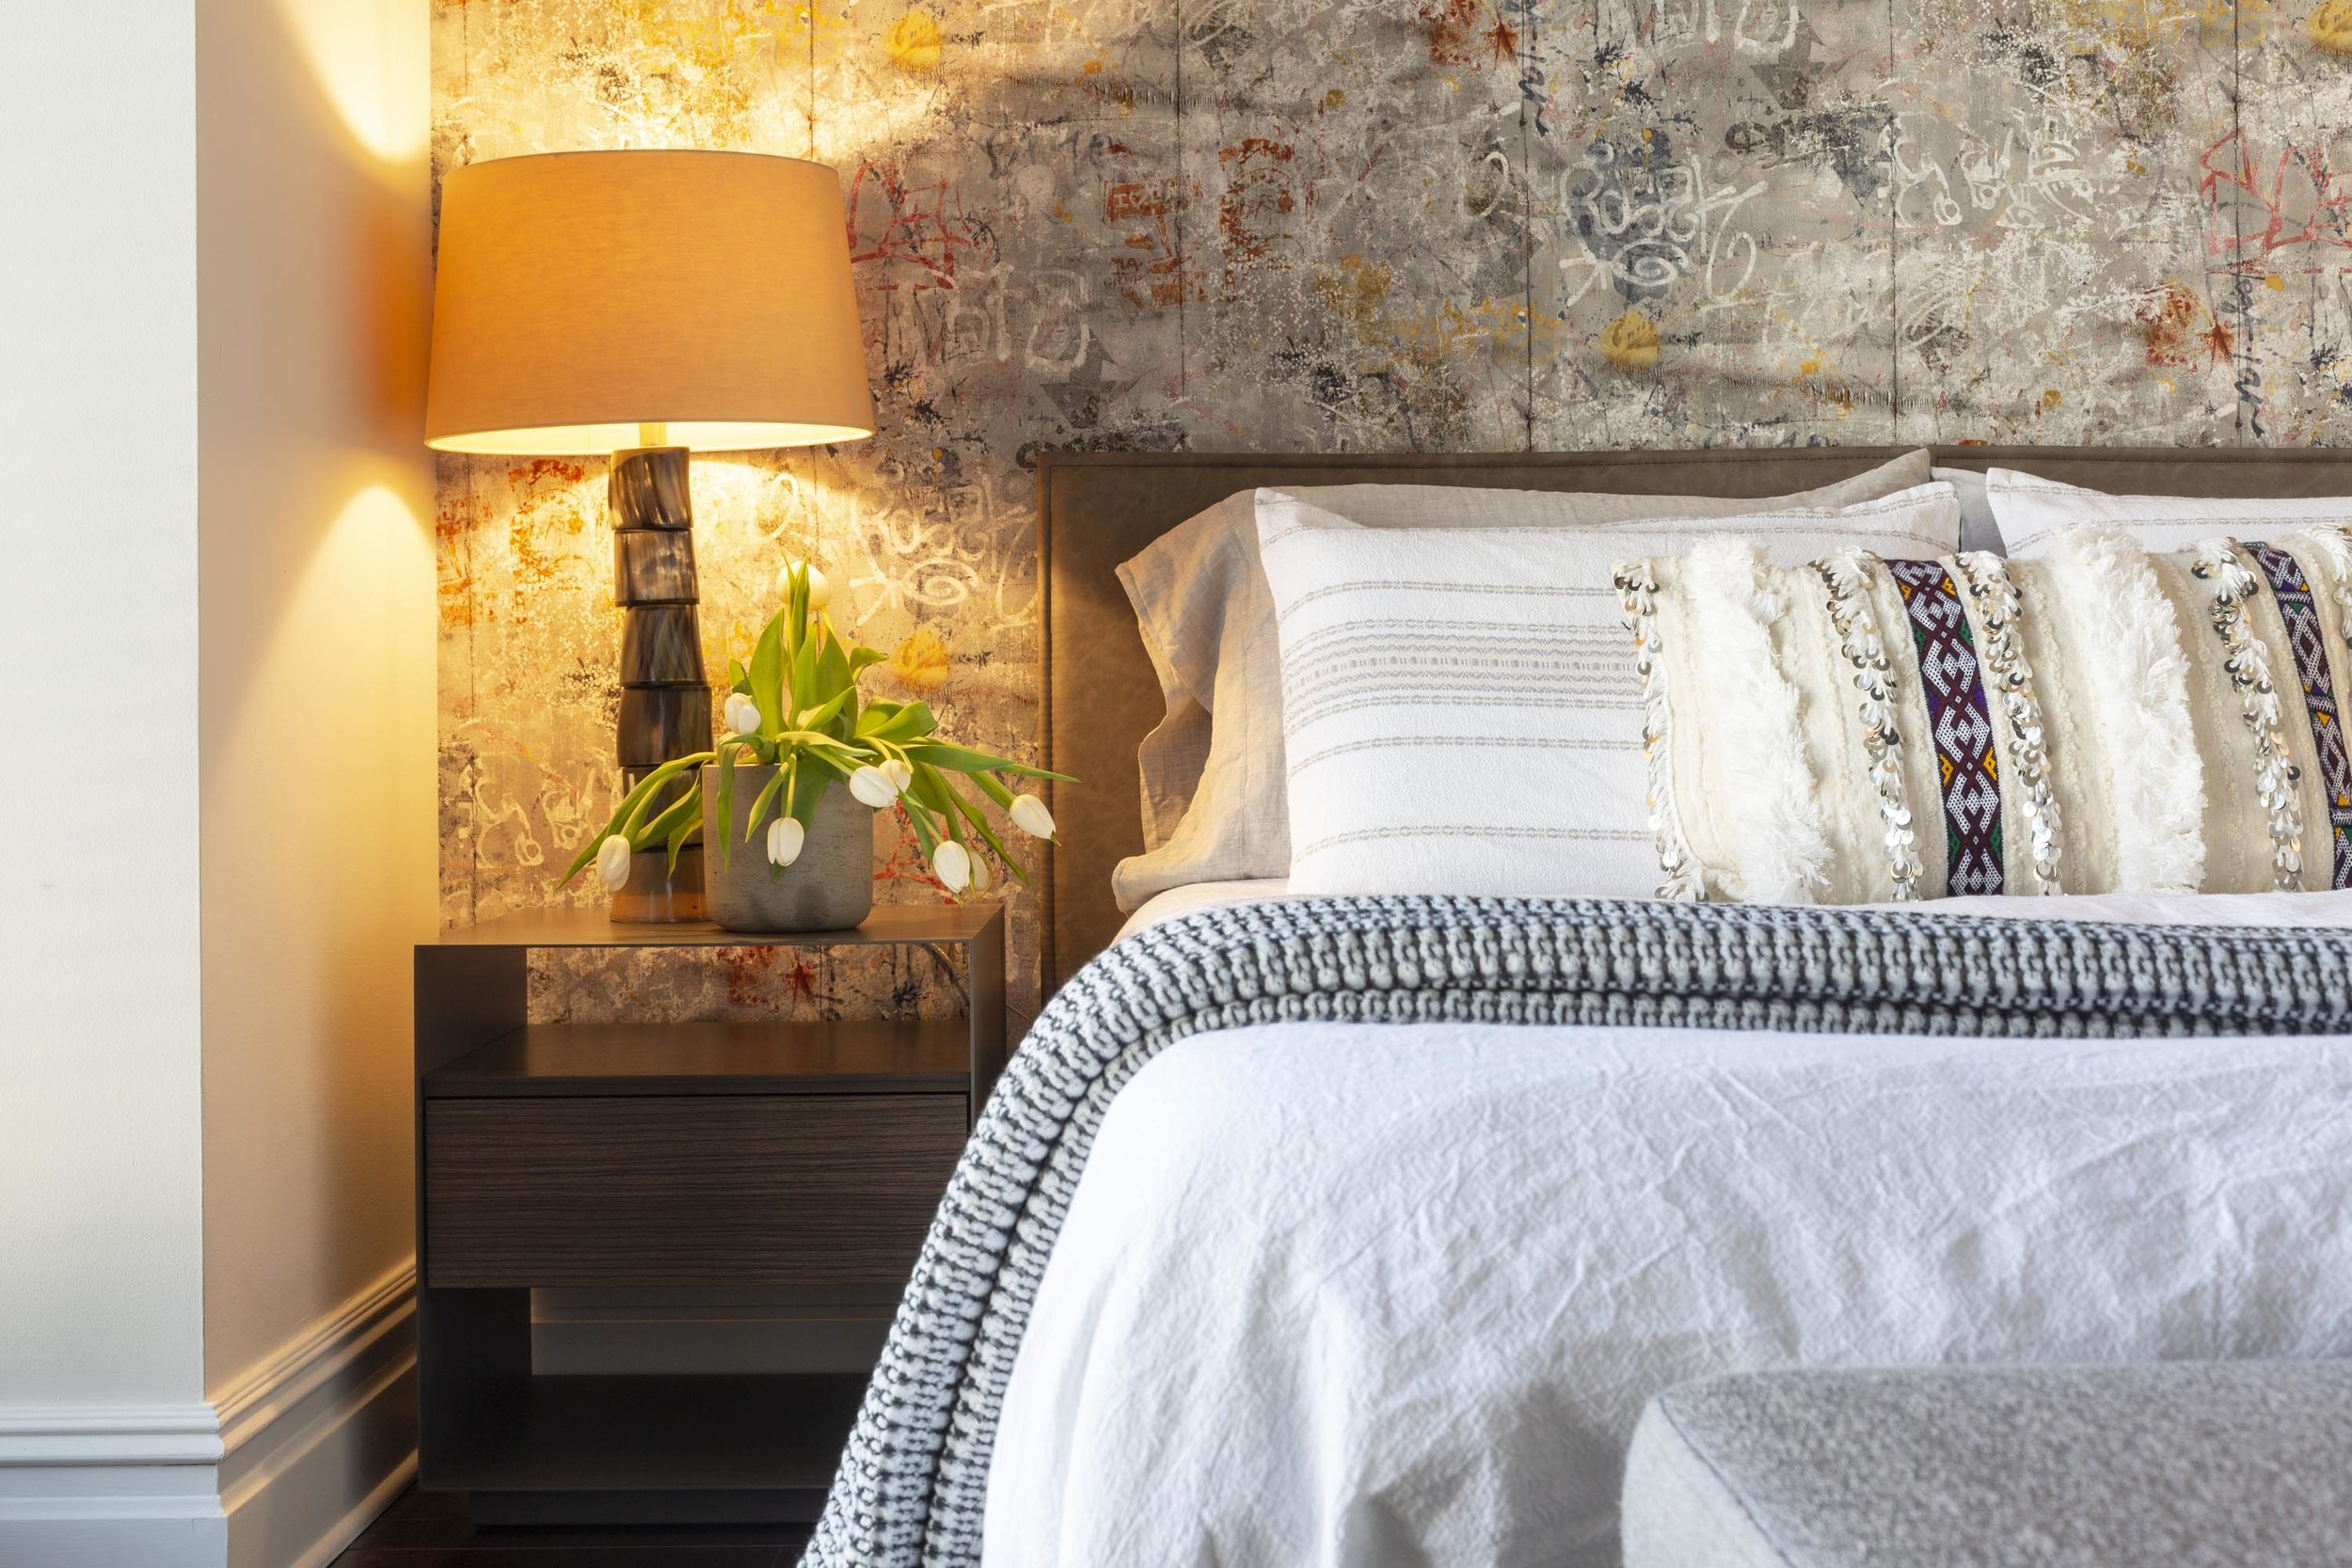 Bedroom with bed, bedside table, table lamp, flowers and custom wallpaper